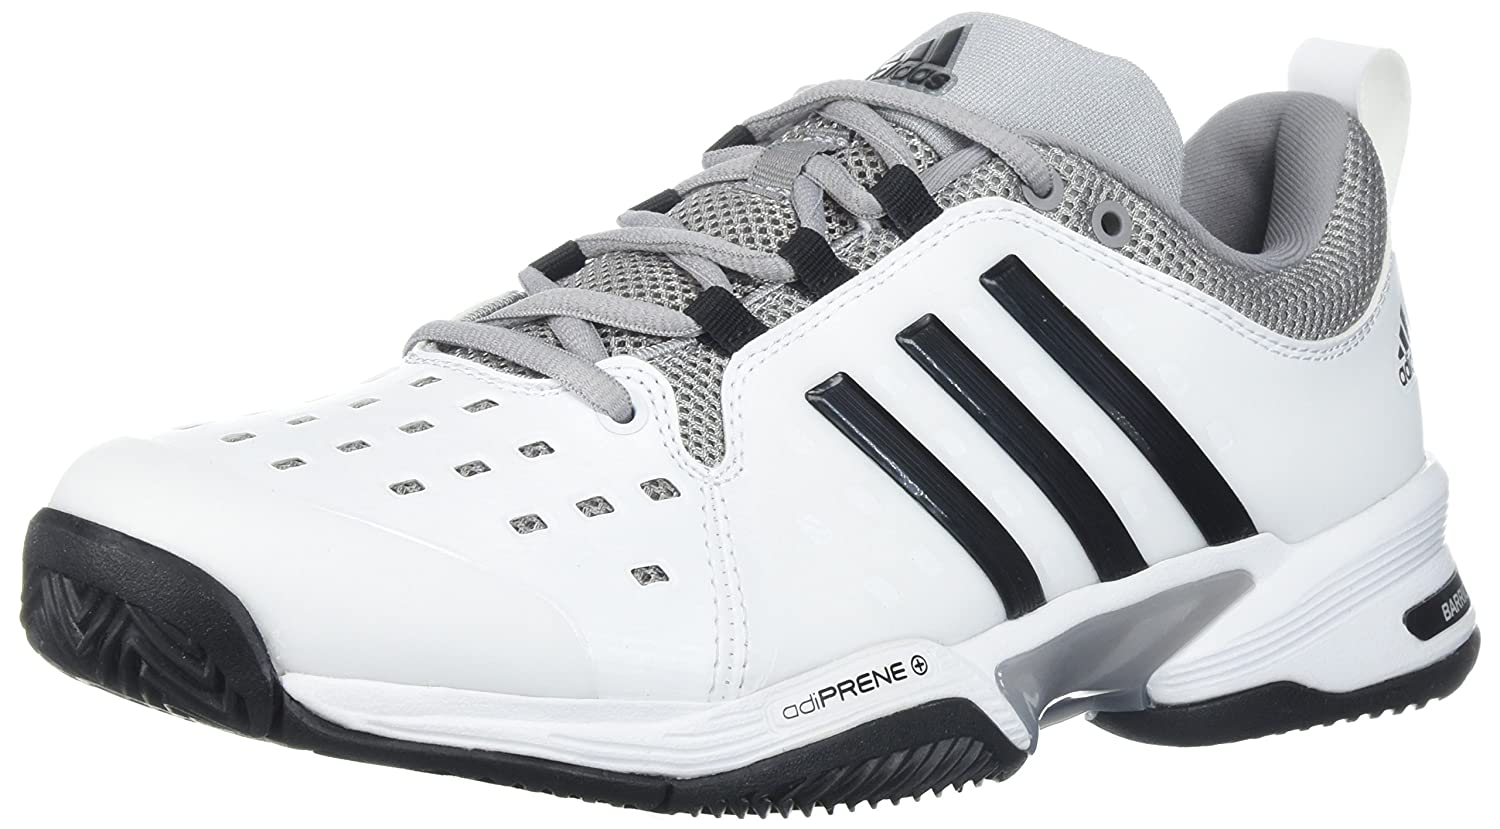 adidas Barricade Classic Wide 4E Tennis Shoe, Black/Silver Metallic/White, 6 M US B01H19MBV8 5 W US|White/Black/Mid Grey